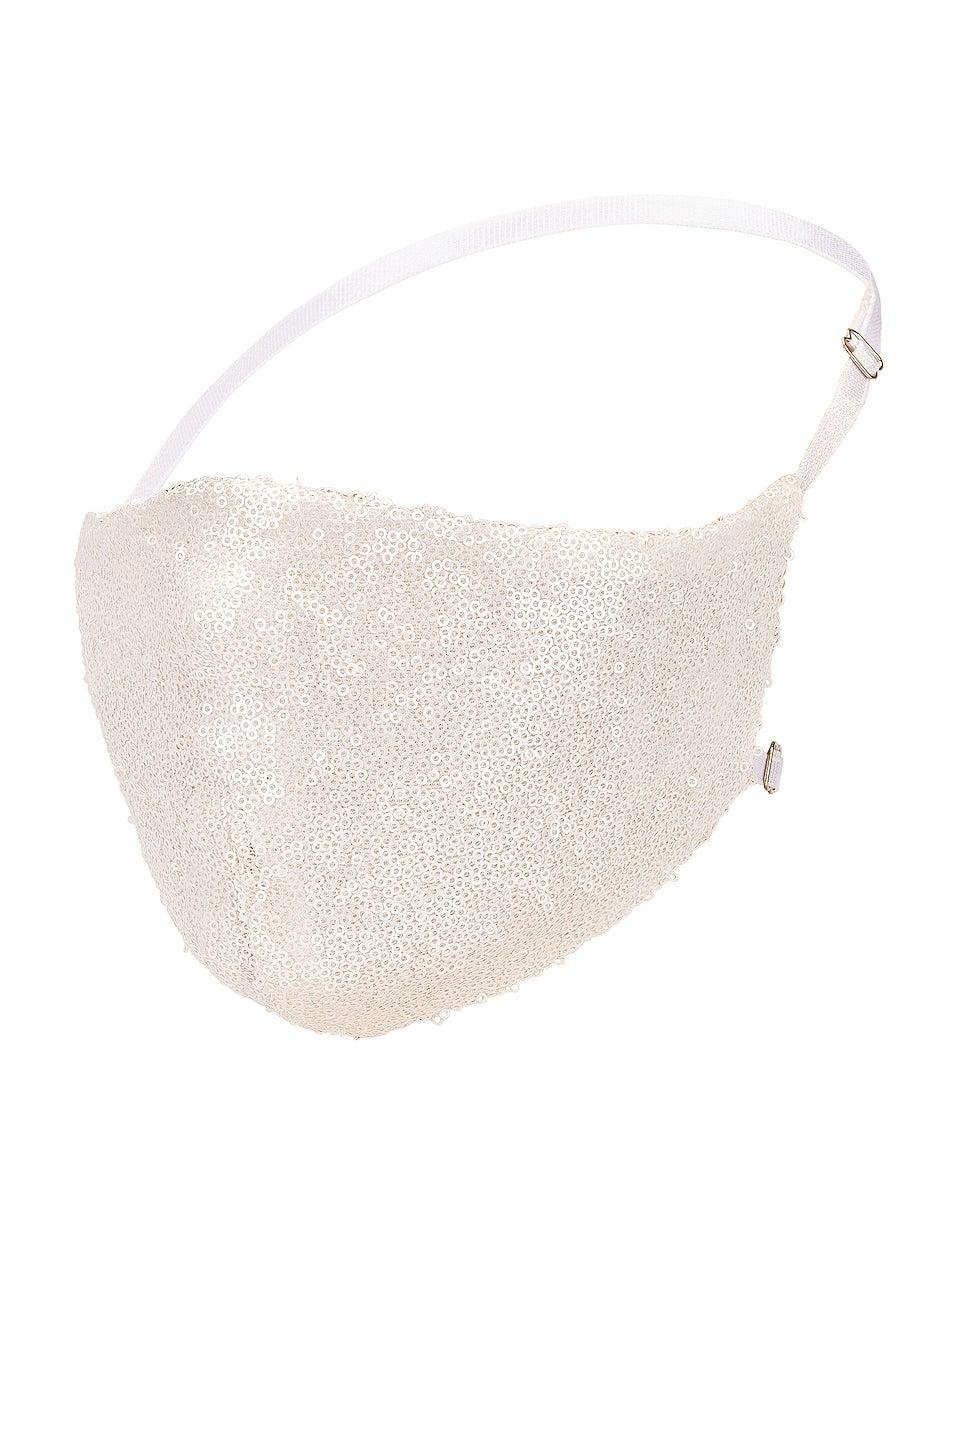 """<br><br><strong>Katie May</strong> Disco Ball Face Mask, $, available at <a href=""""https://go.skimresources.com/?id=30283X879131&url=https%3A%2F%2Fwww.revolve.com%2Fkatie-may-disco-ball-face-mask%2Fdp%2FKATR-WA2%2F"""" rel=""""nofollow noopener"""" target=""""_blank"""" data-ylk=""""slk:Revolve"""" class=""""link rapid-noclick-resp"""">Revolve</a>"""